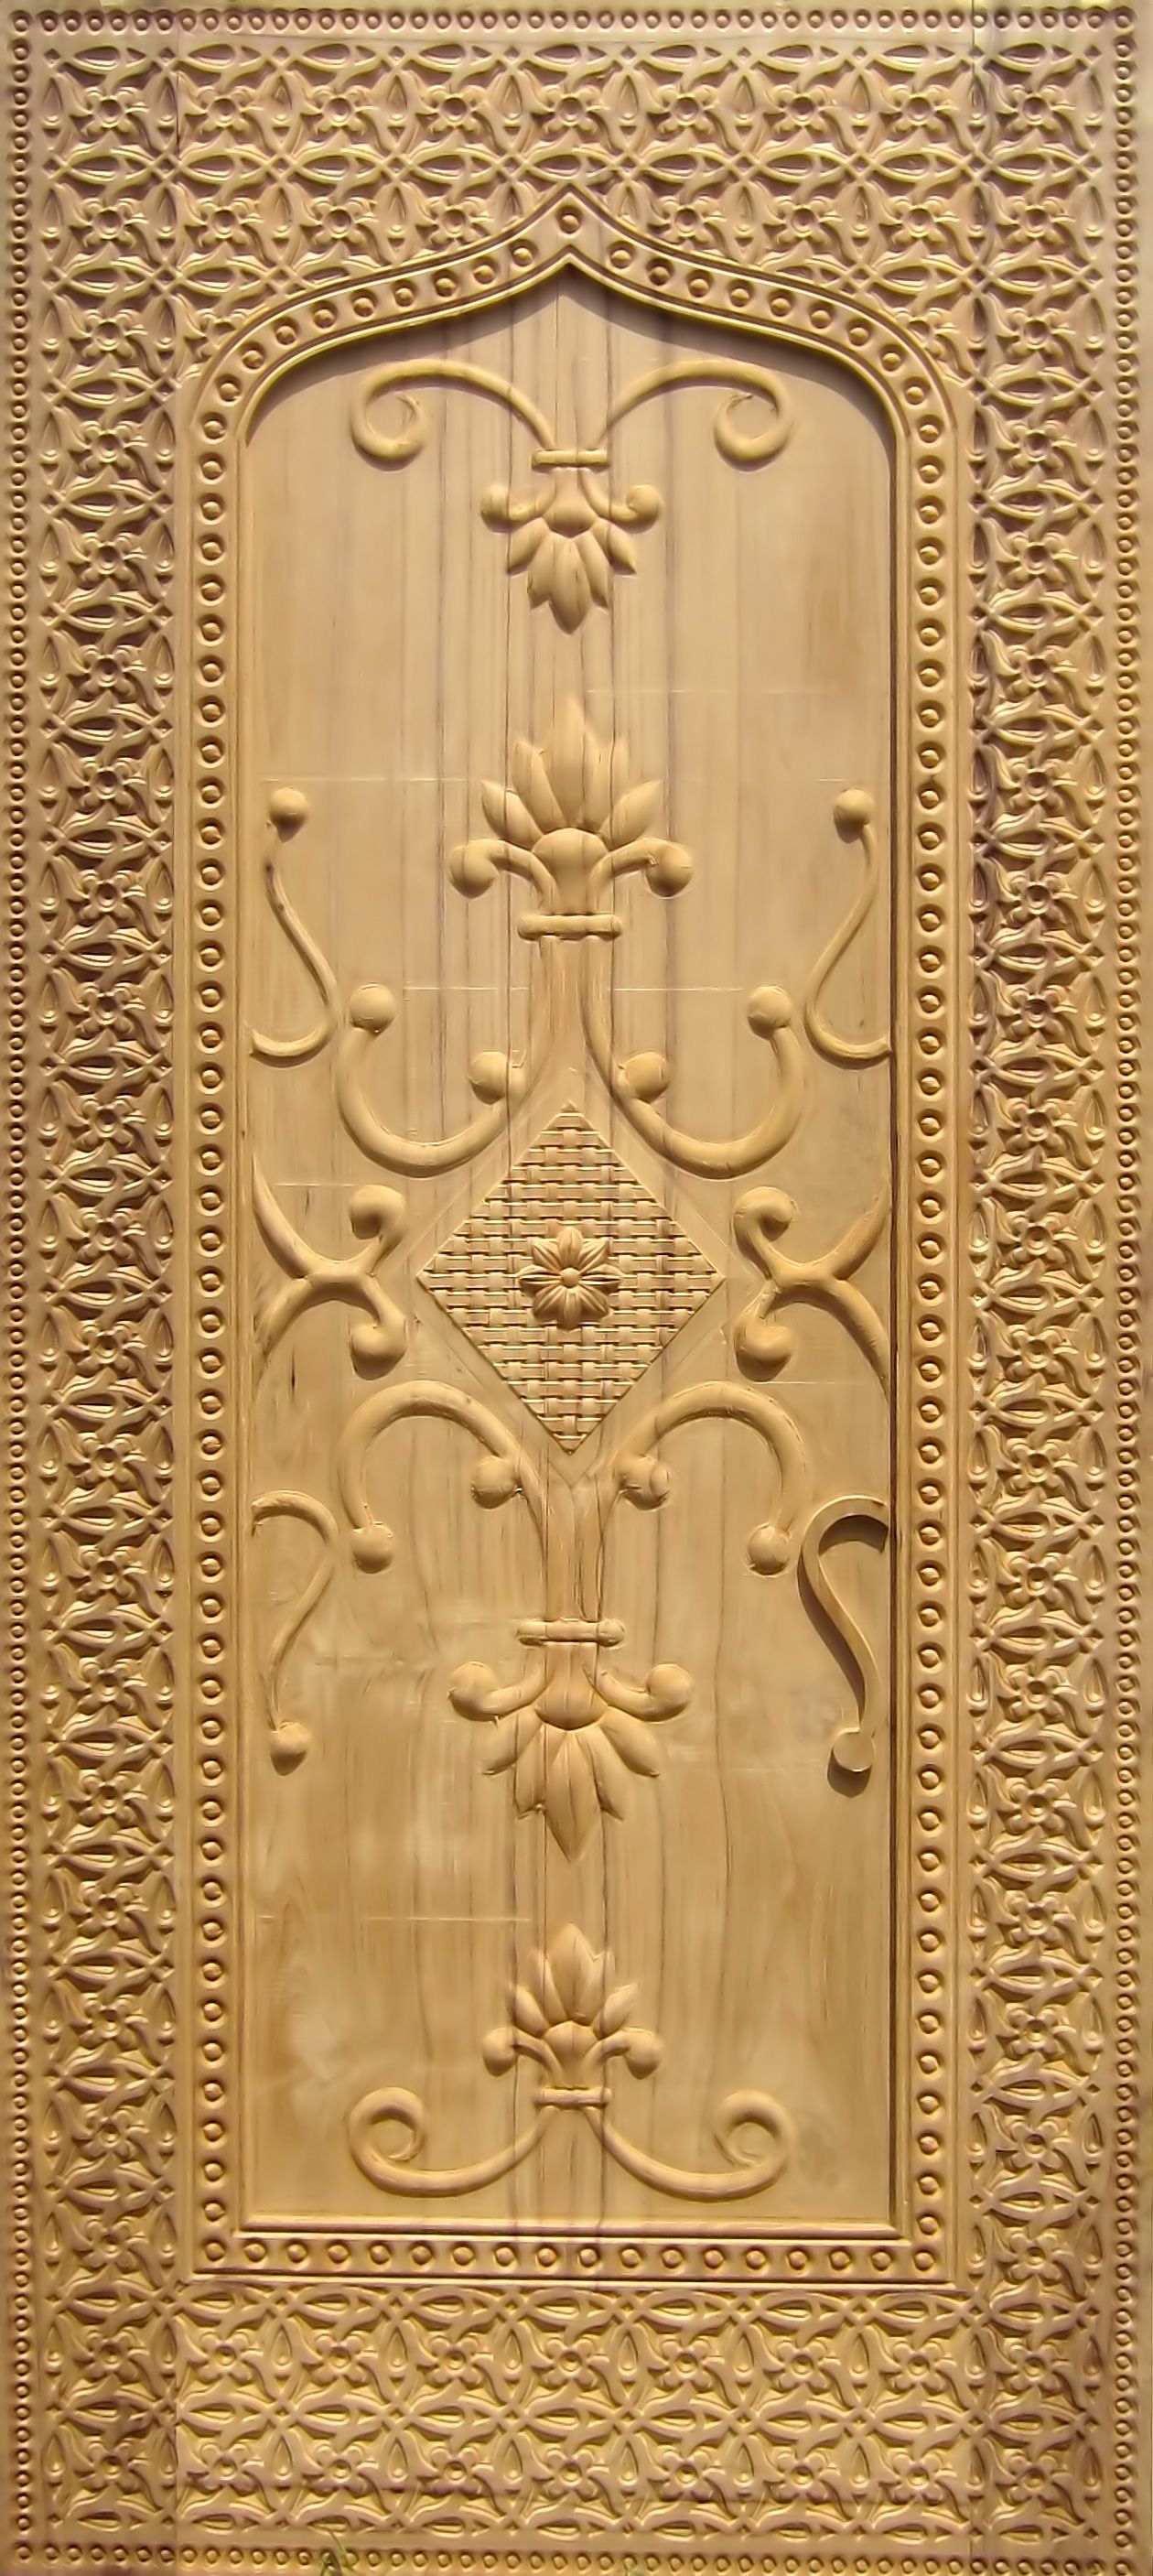 We Manufacture These Beautiful Teak Wood Carved Doors Which Are Termite And Water Proof For Lifetime Our Range Of Tea Door Design Wood Door Design Carved Doors